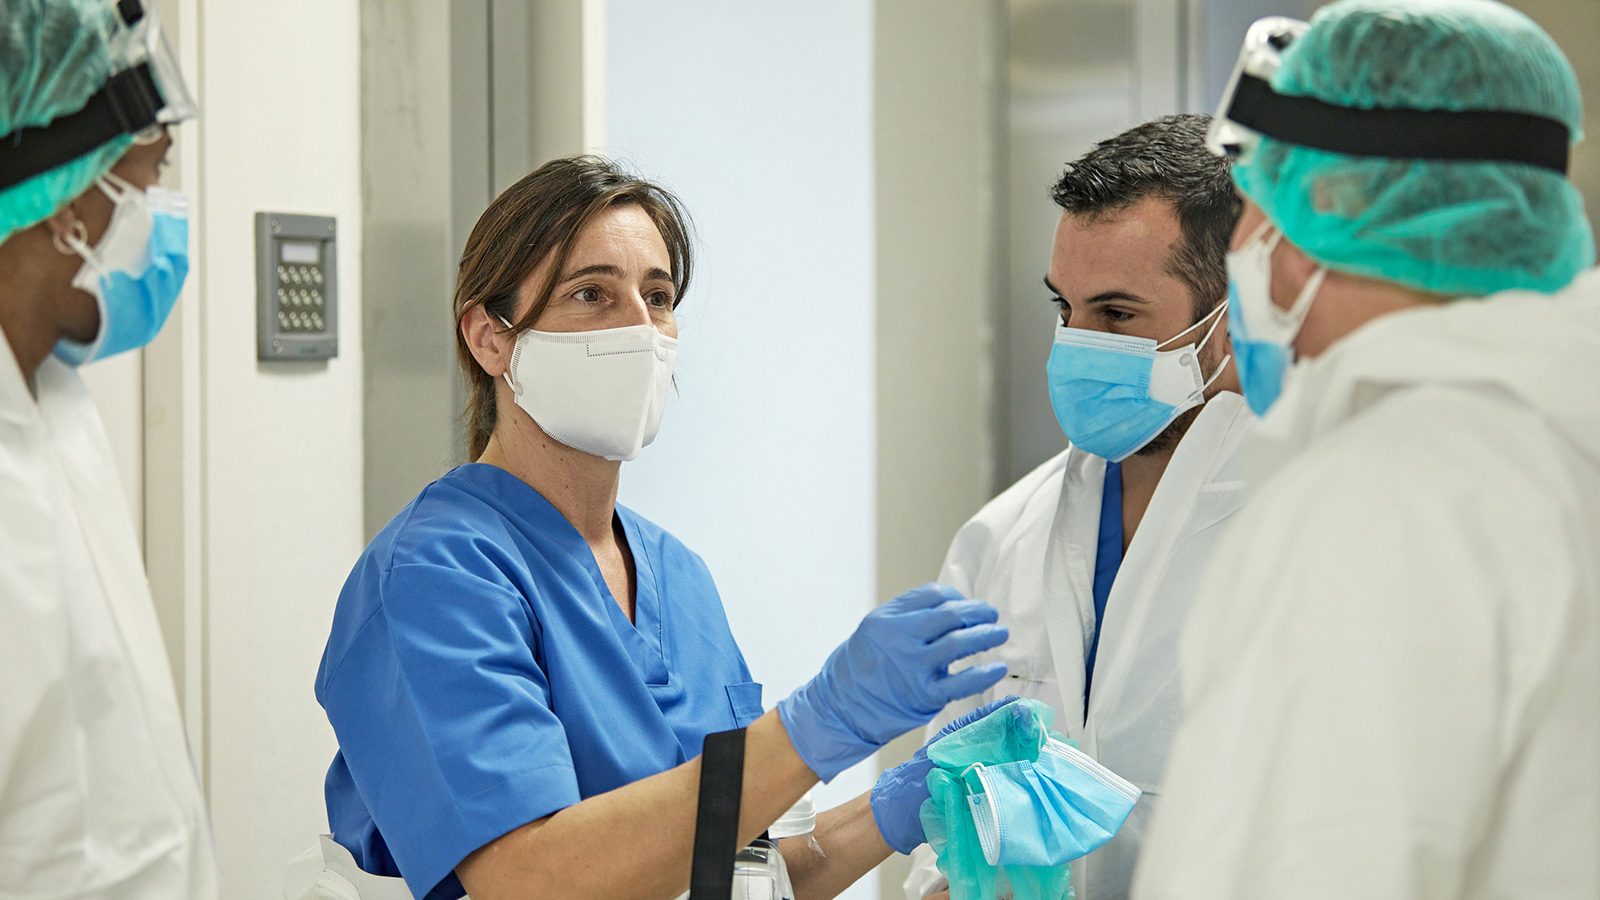 Healthcare workers talking while wearing masks